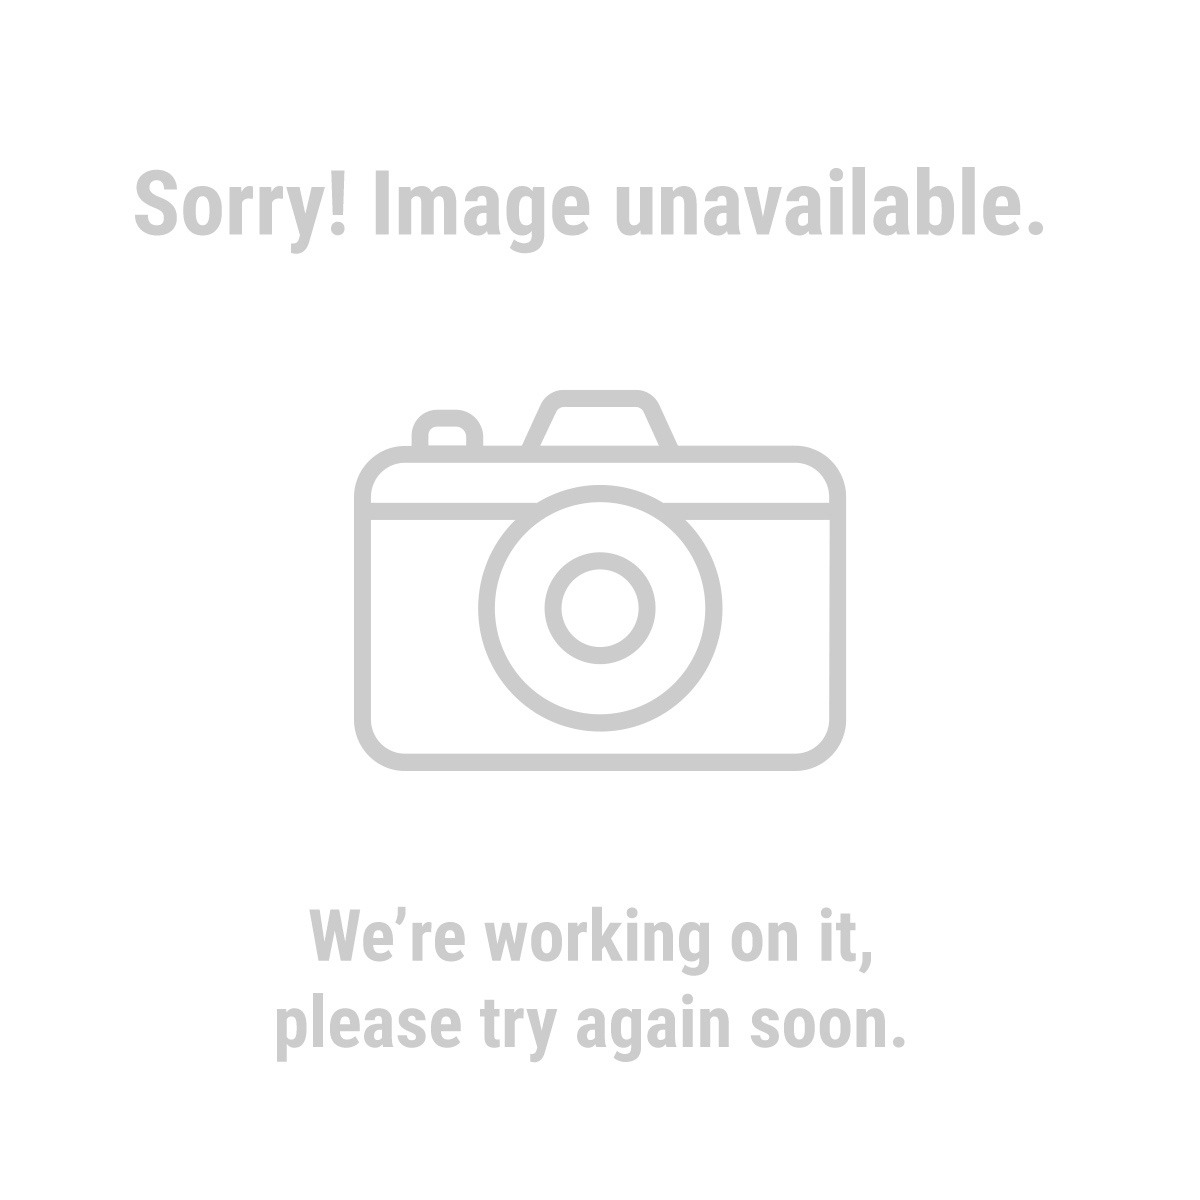 HFT 69567 LED Worklight/Flashlight,  27 LED Portable